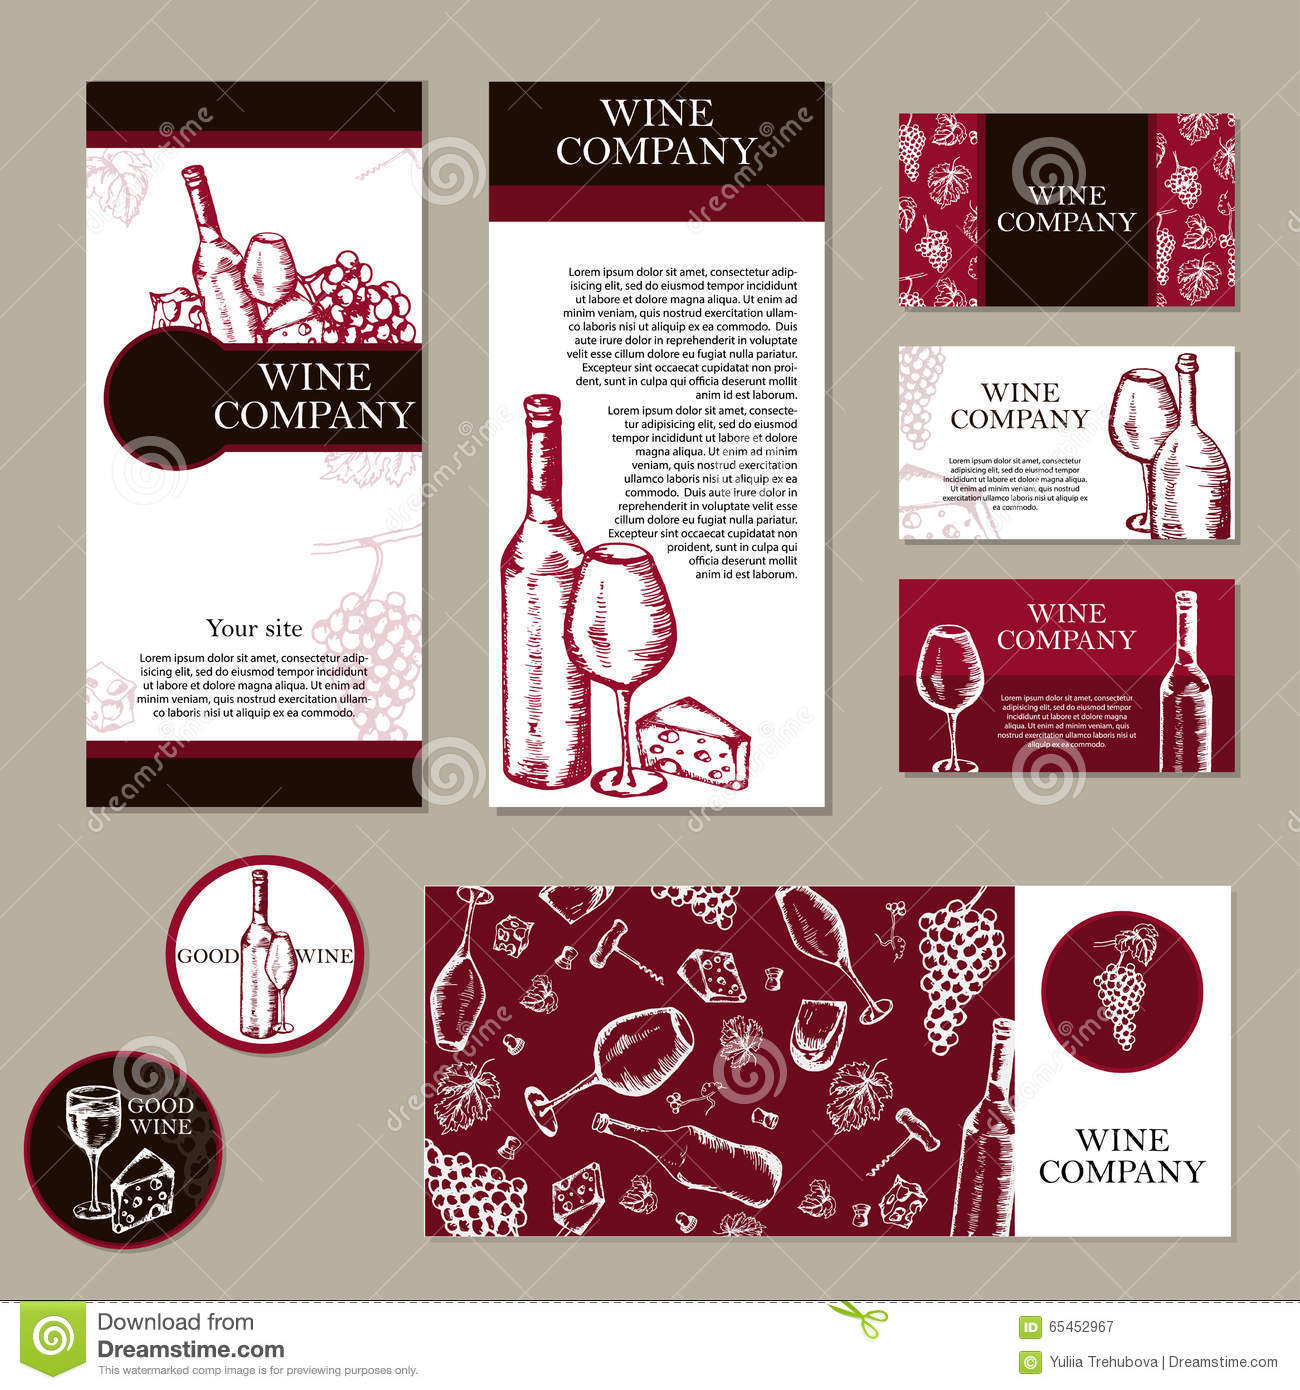 Wine company restaurant theme corporate identity